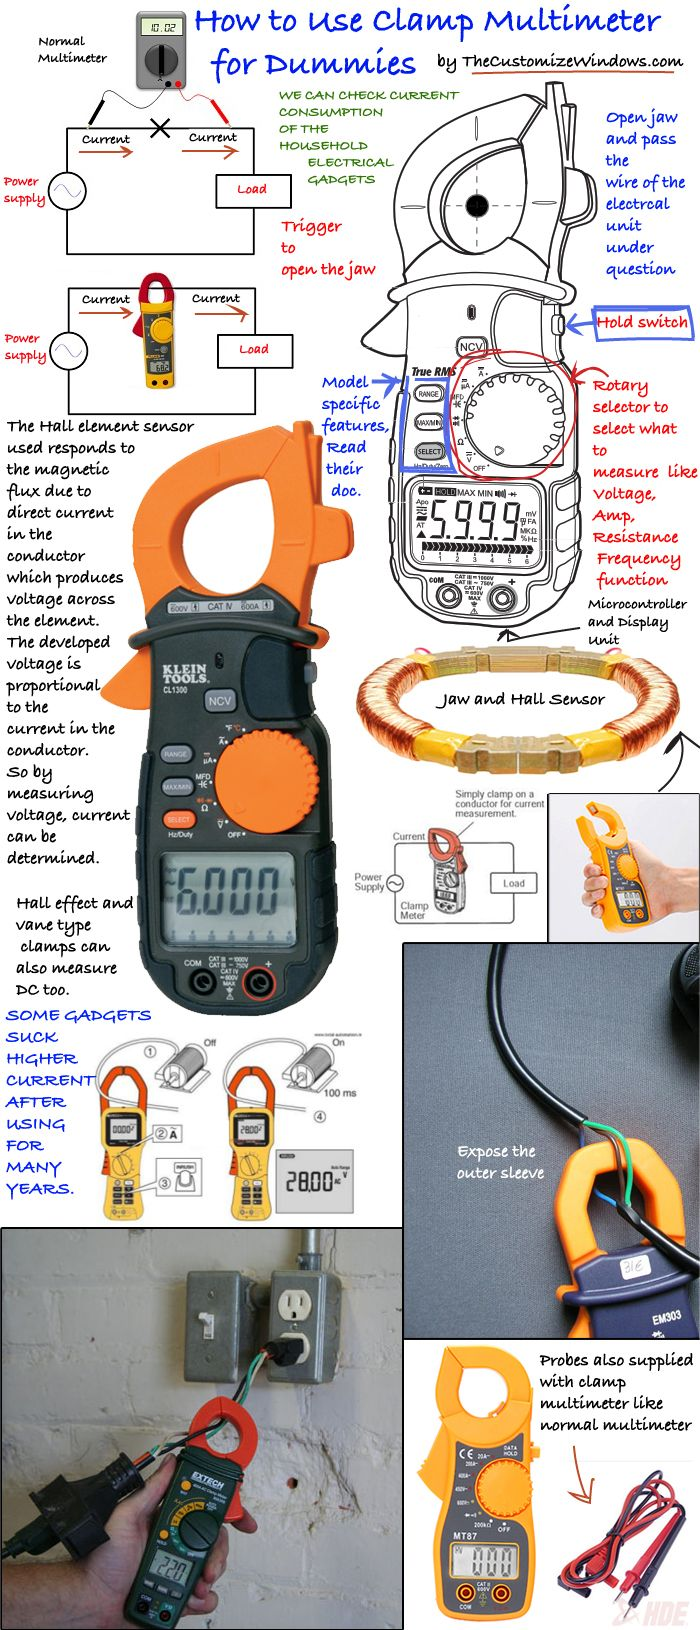 It is great for testing real current consumed by electrical gadgets used in our homes. A clamp meter is like a digital multimeter with a jaw which can clamped around a wire of an operating electrical instrument to measure current.